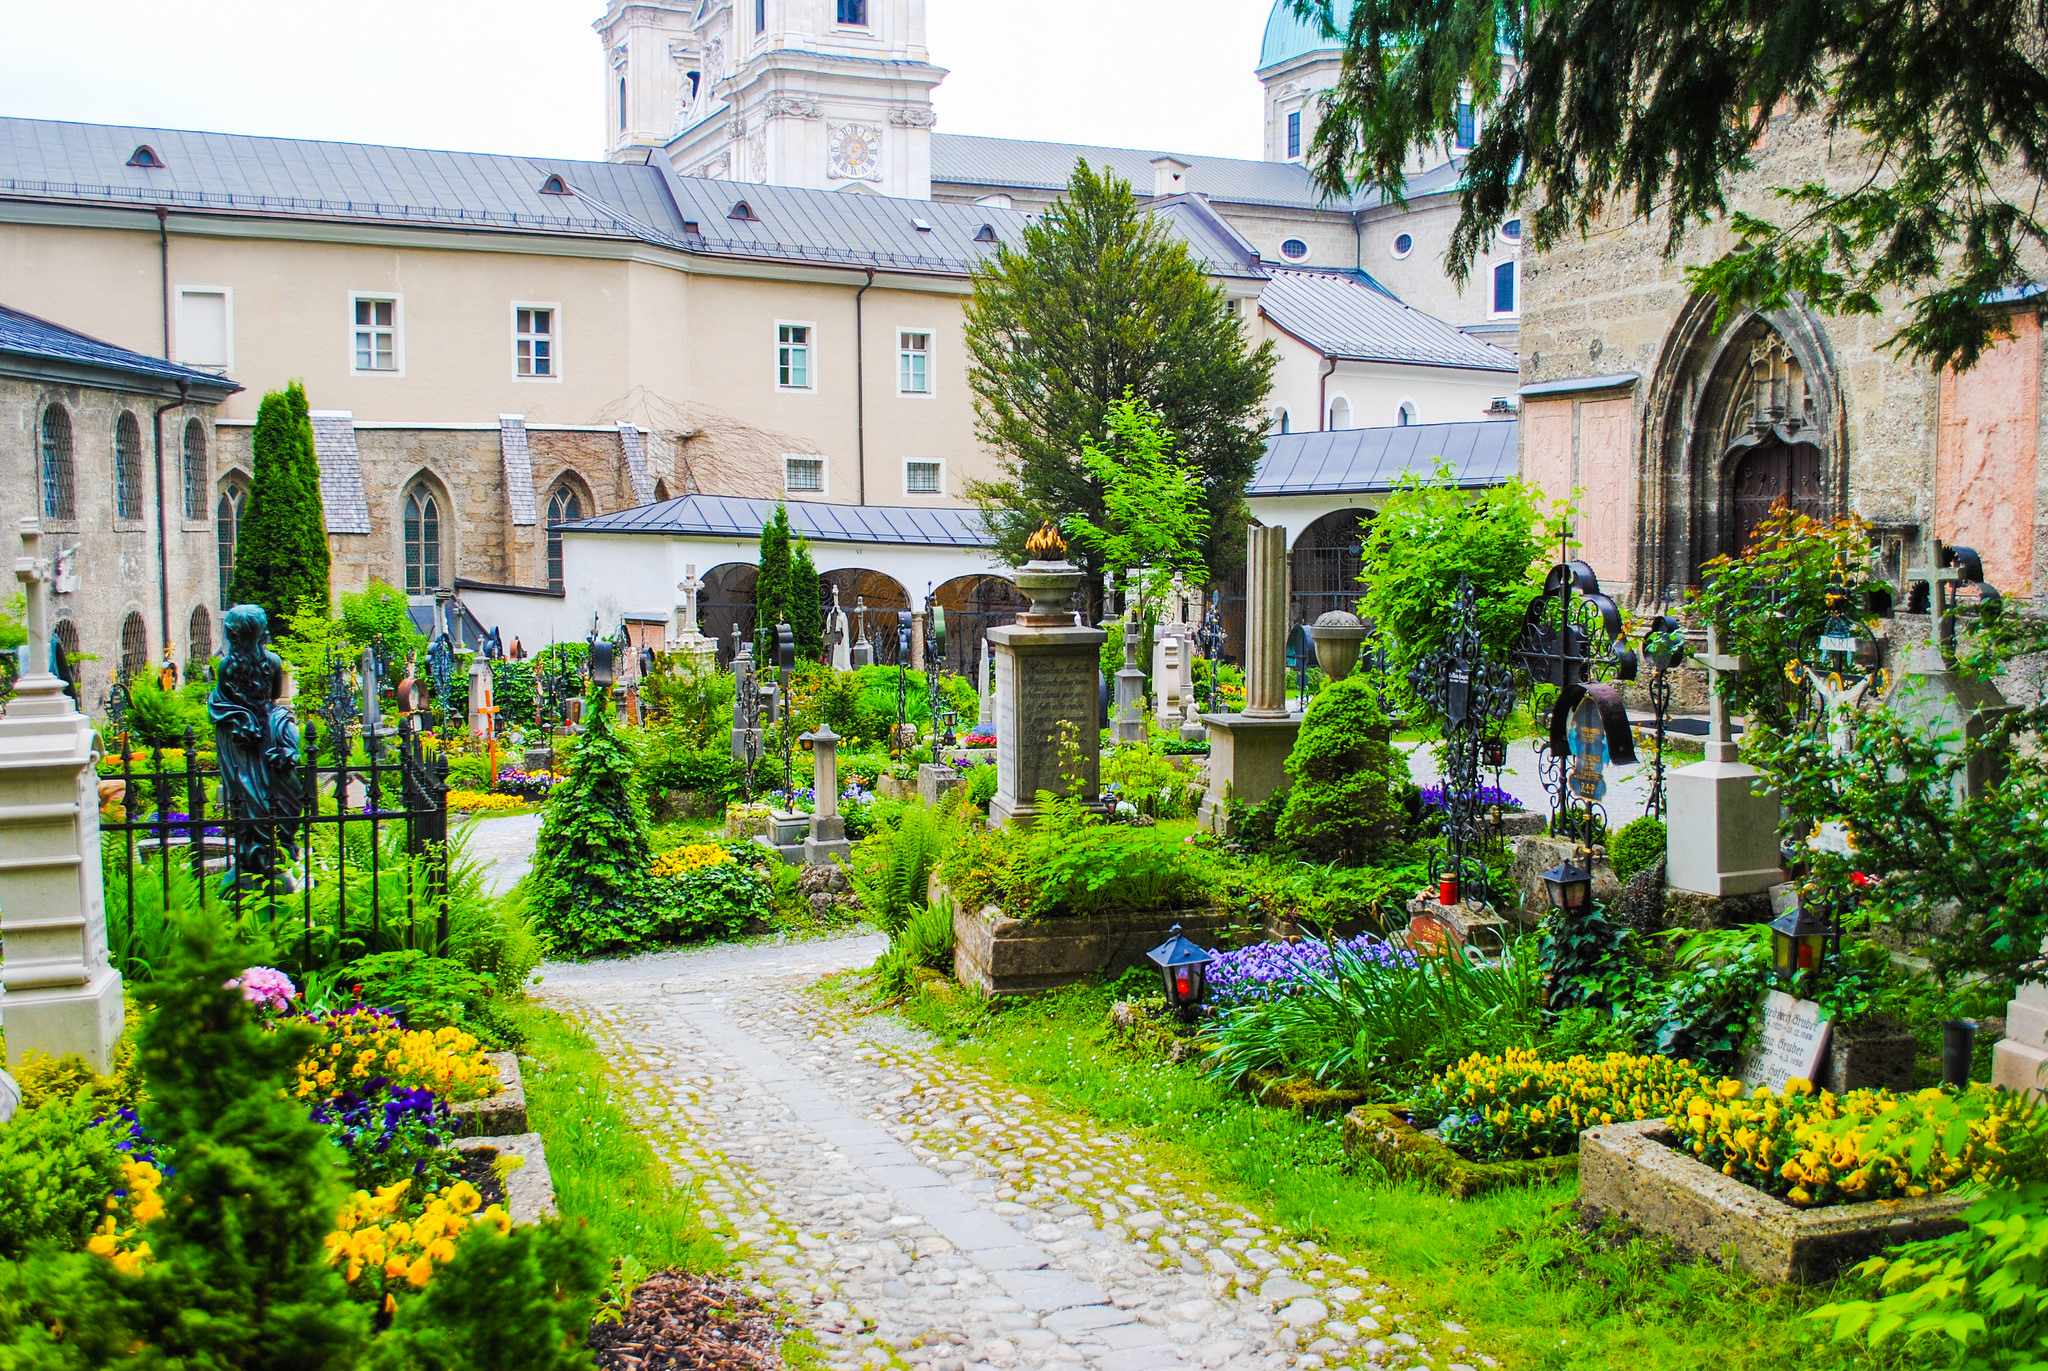 St. Peter's Abbey and Cemetery Salzburg